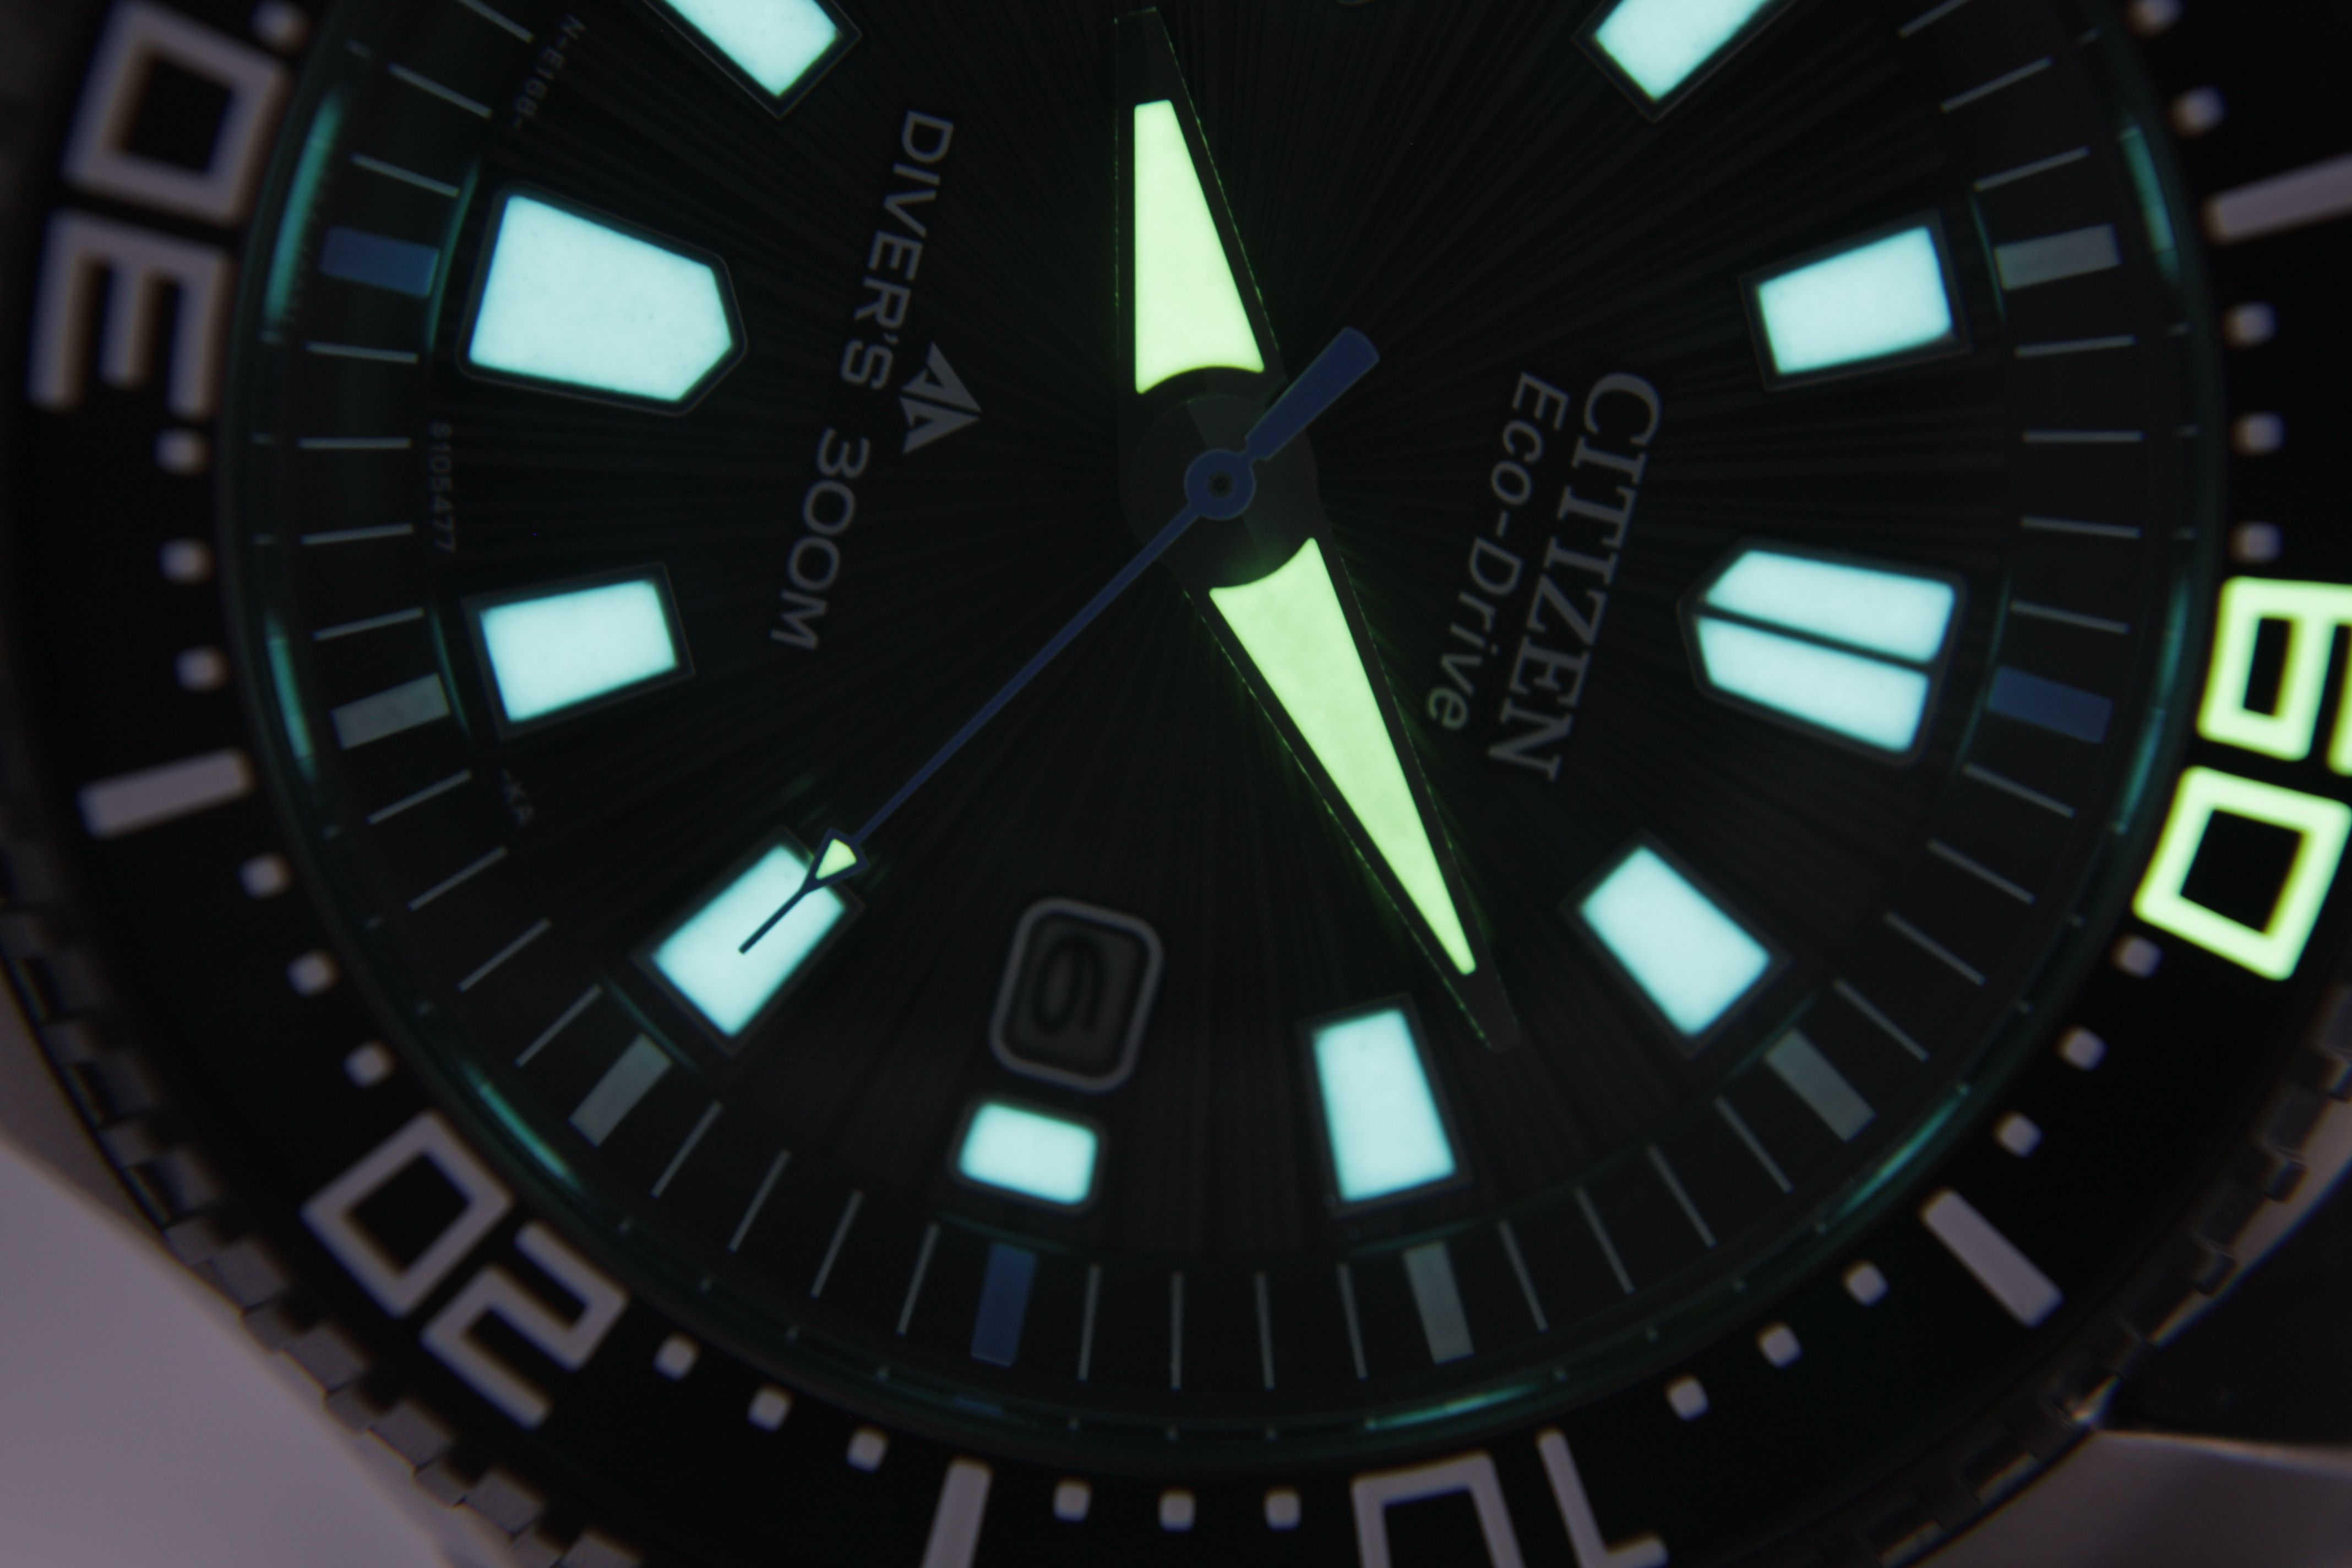 Post your lume shots Mg2191